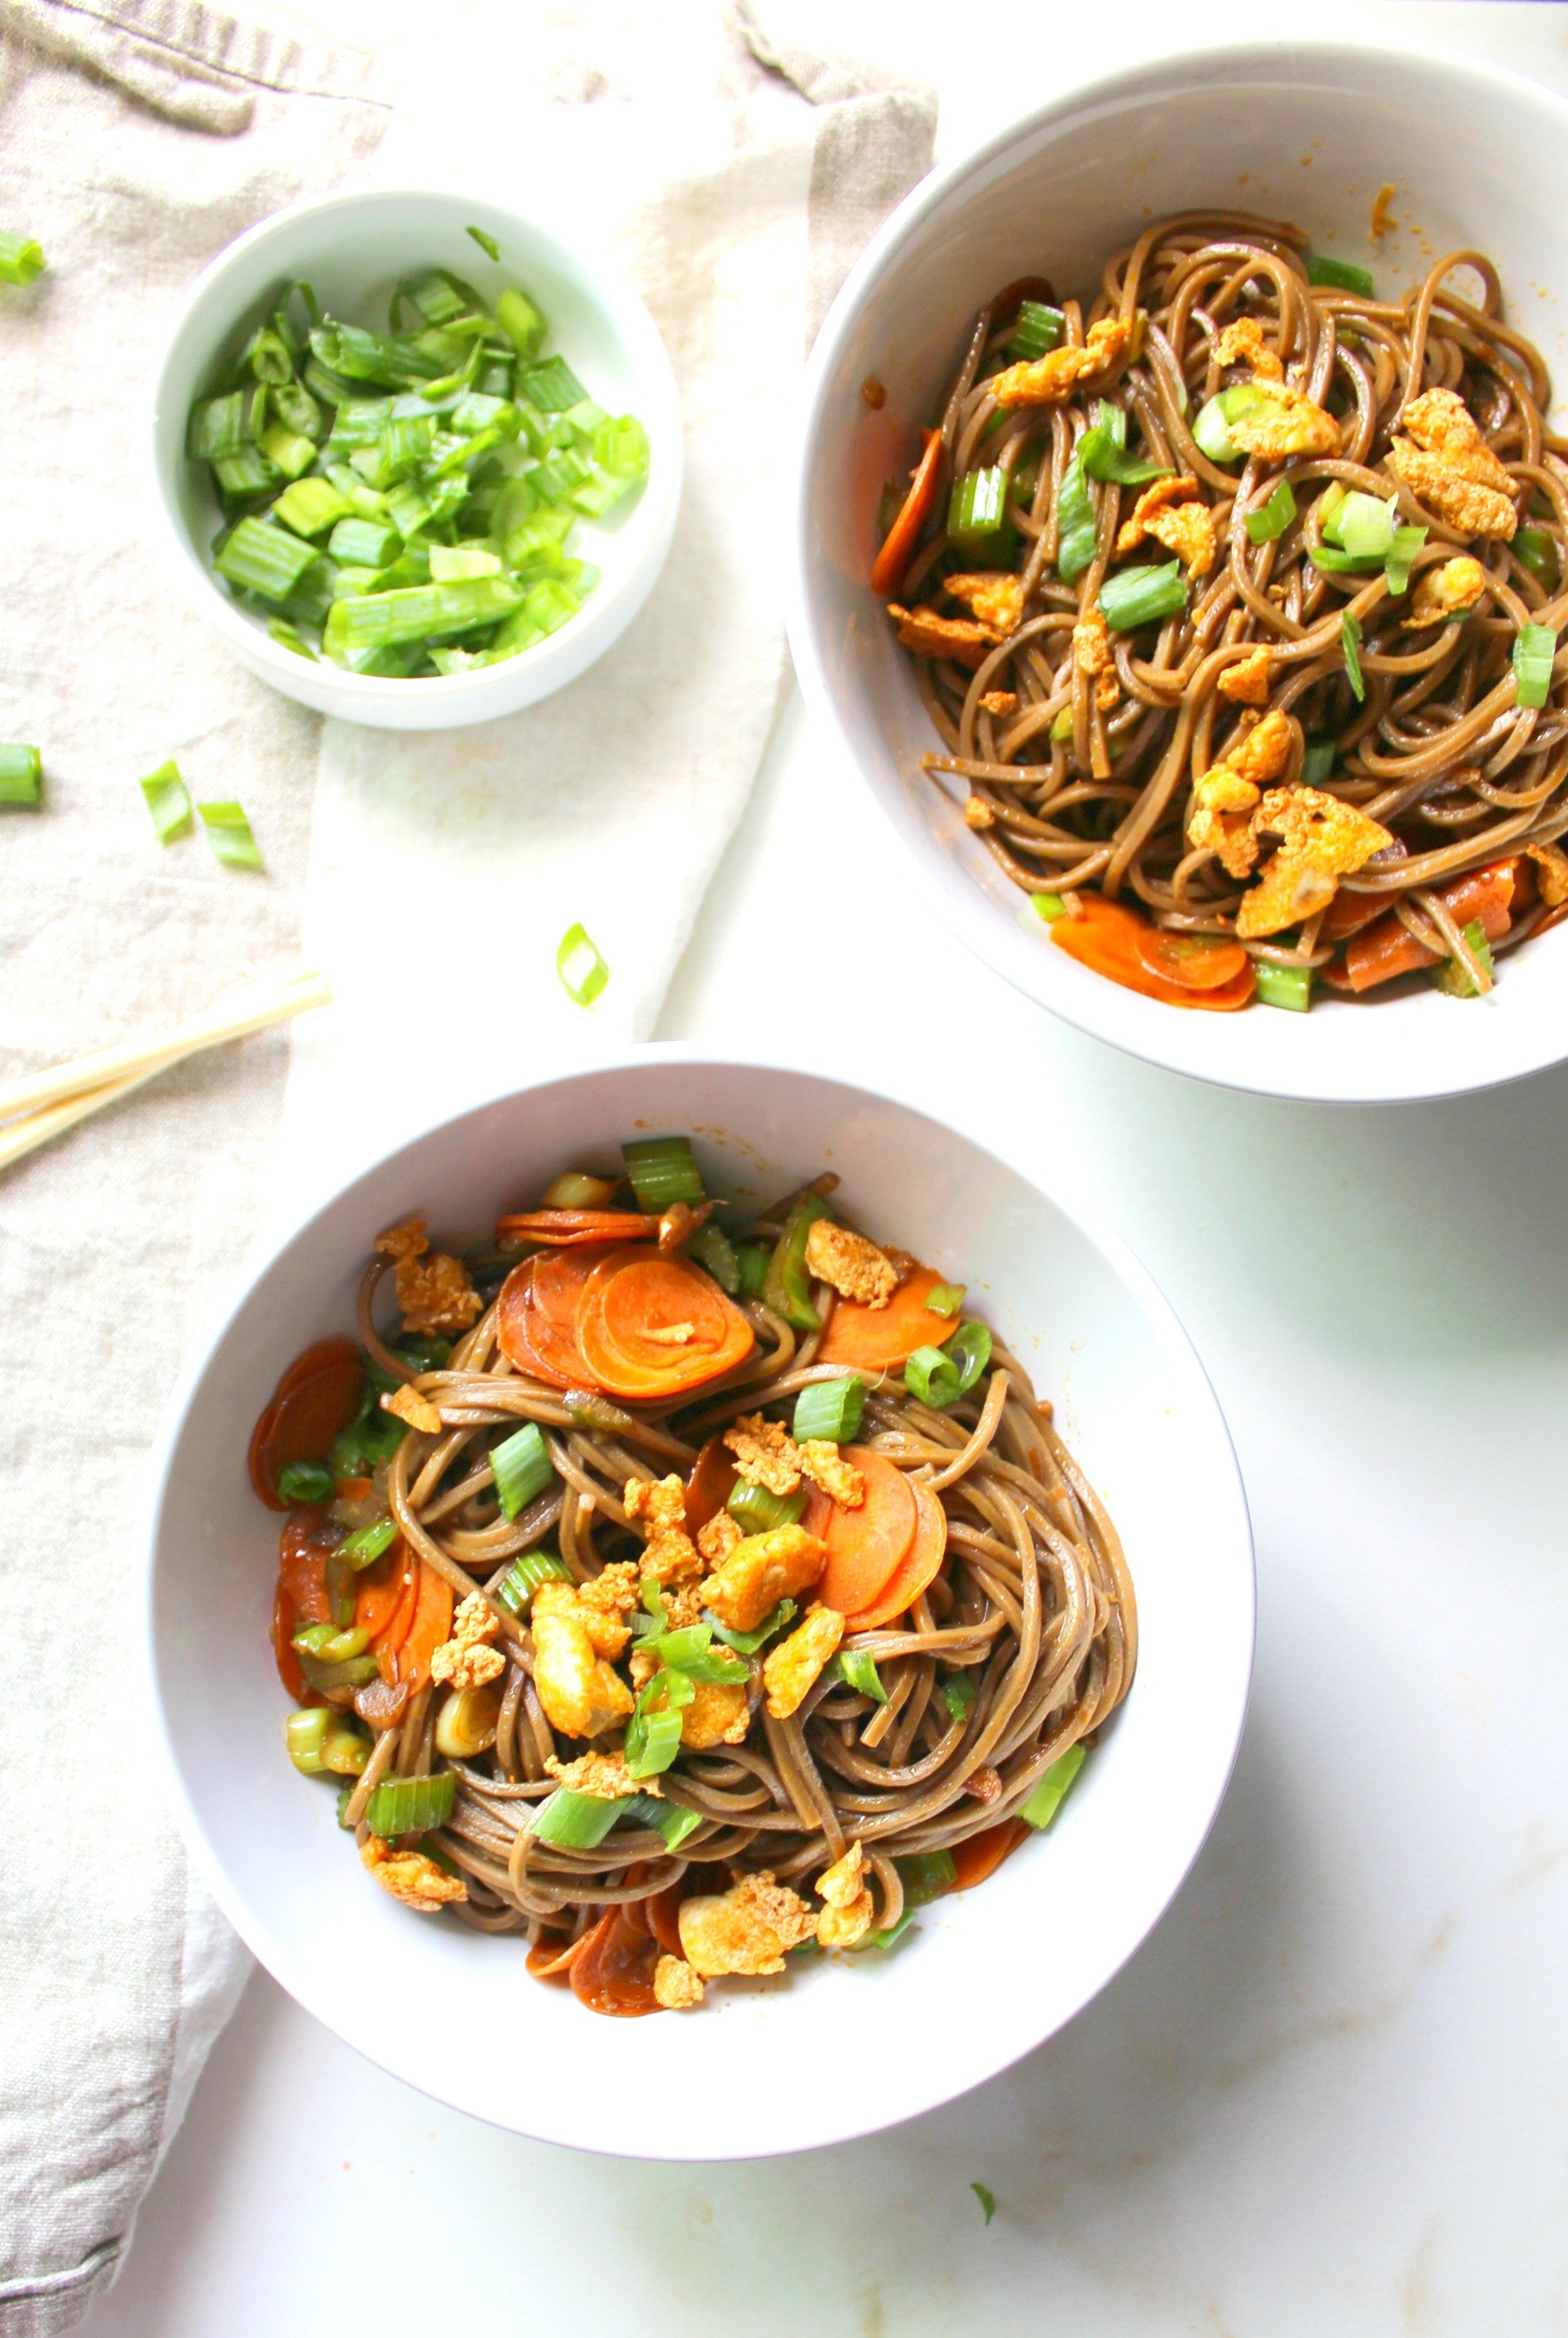 These Sesame Soba Noodles with Crispy Tofu are quick, easy and tasty. A satisfying meal that will have you coming back for more | ThisSavoryVegan.com